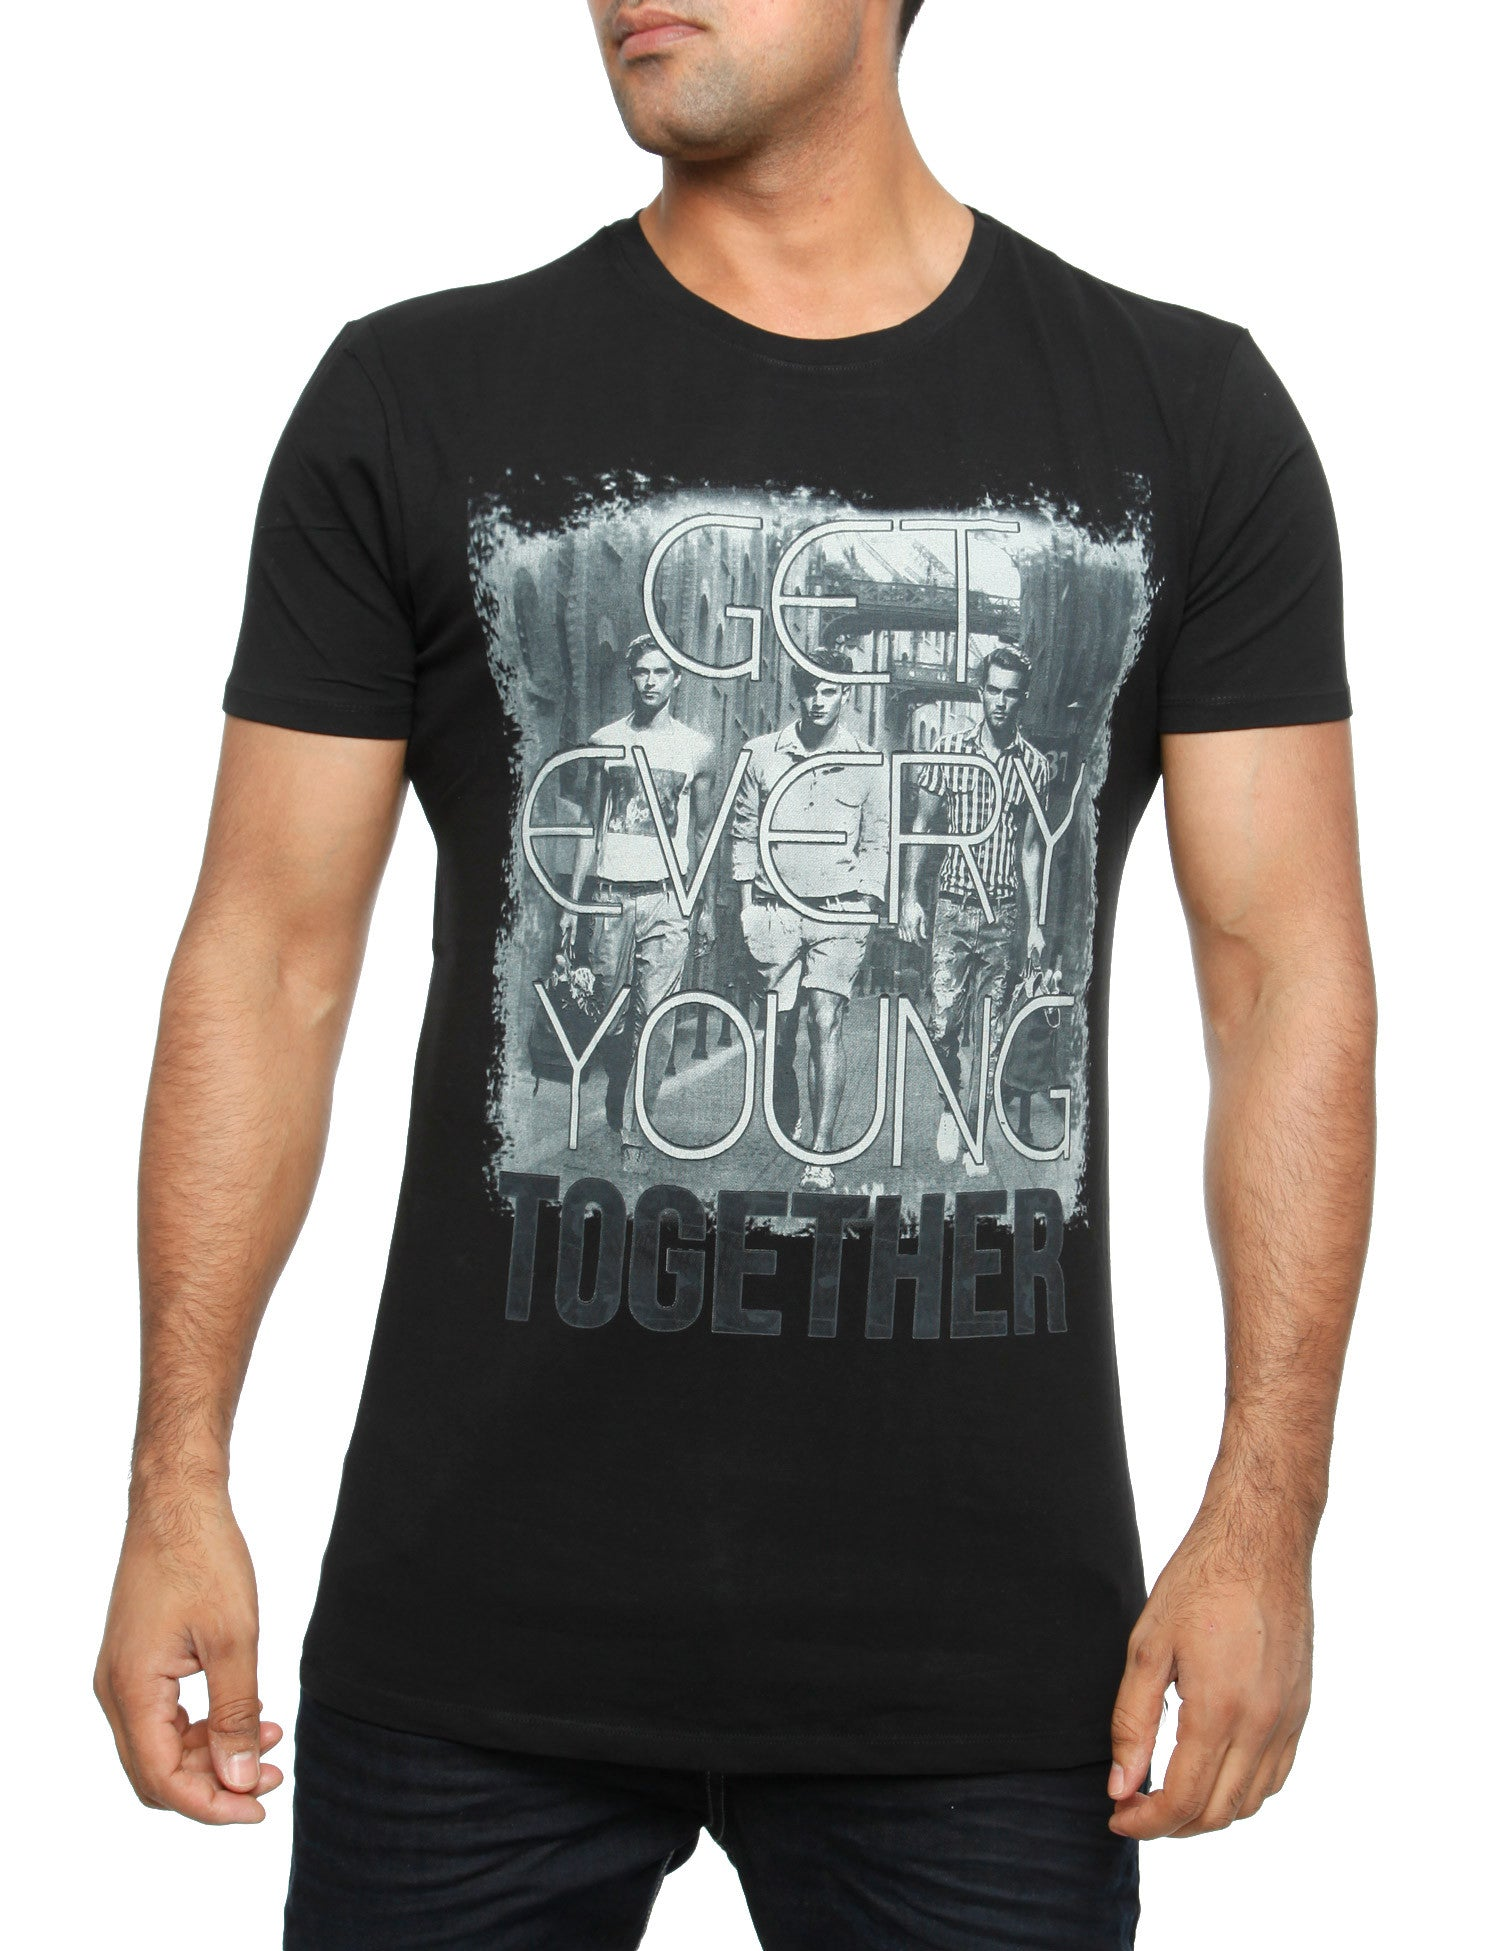 Young together T-Shirt Anthracite Grey